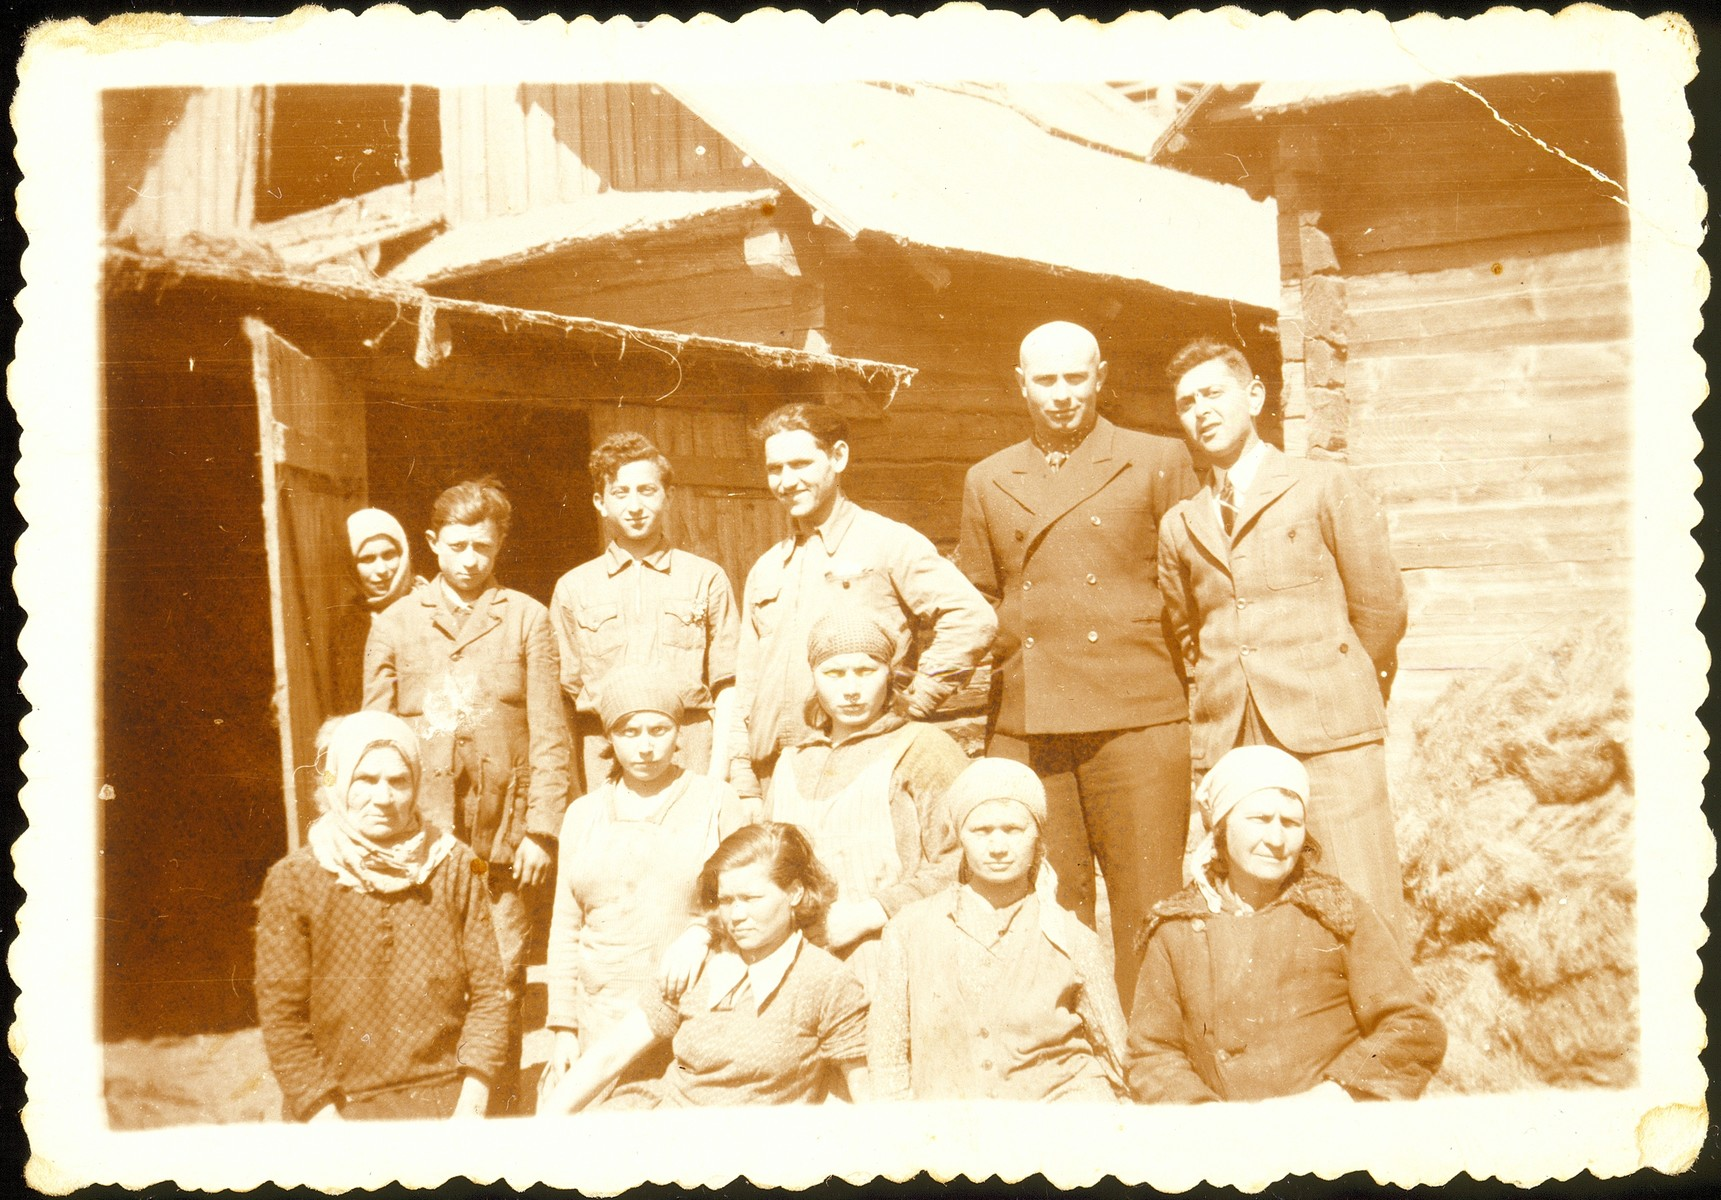 Workers at Mr. Derebiacki's linen factory.  Mr. Derebiacki is pictured second from the right.  Pesach Abrahamson is pictured third from the right.